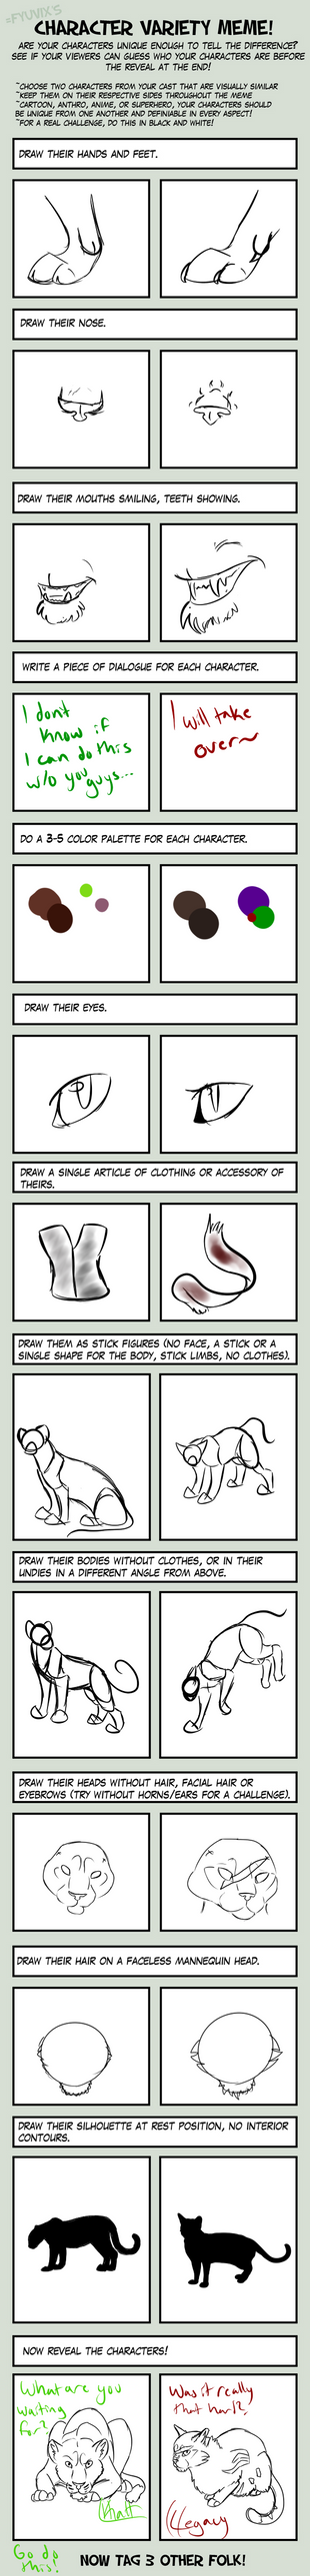 Take a guess! by TheCatsPupil on DeviantArt